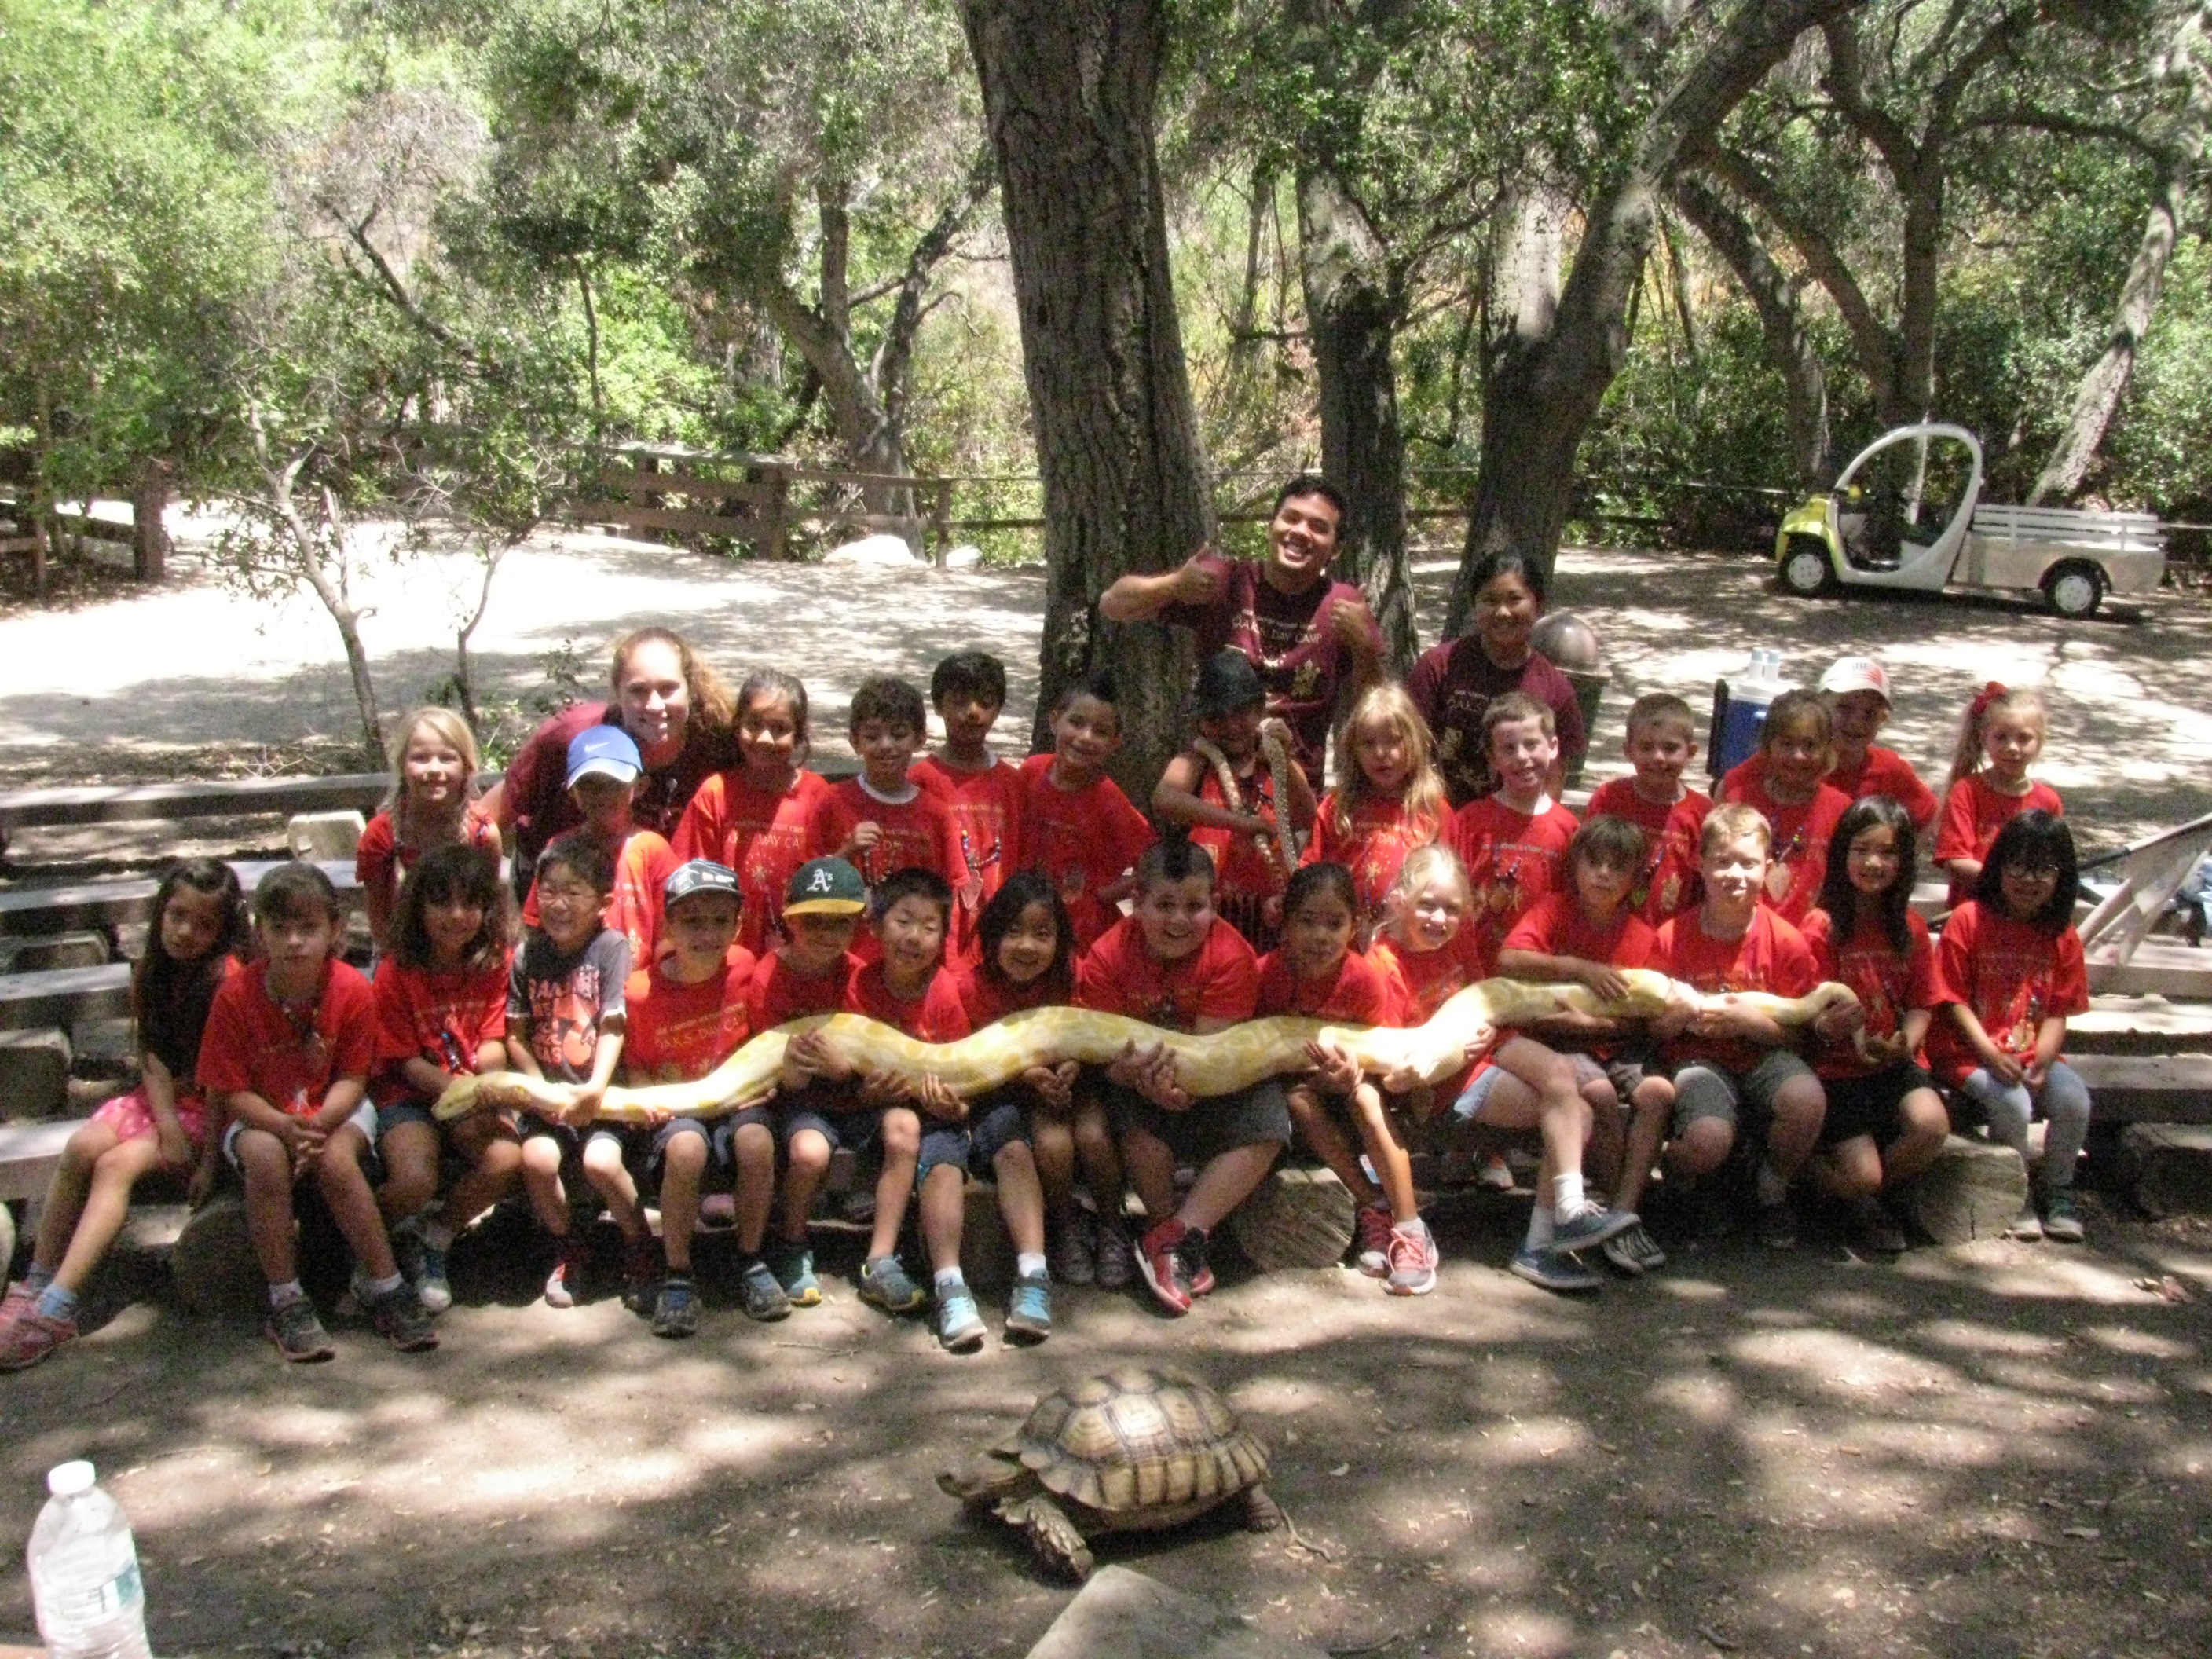 Kids holding long snake in front of a turtle